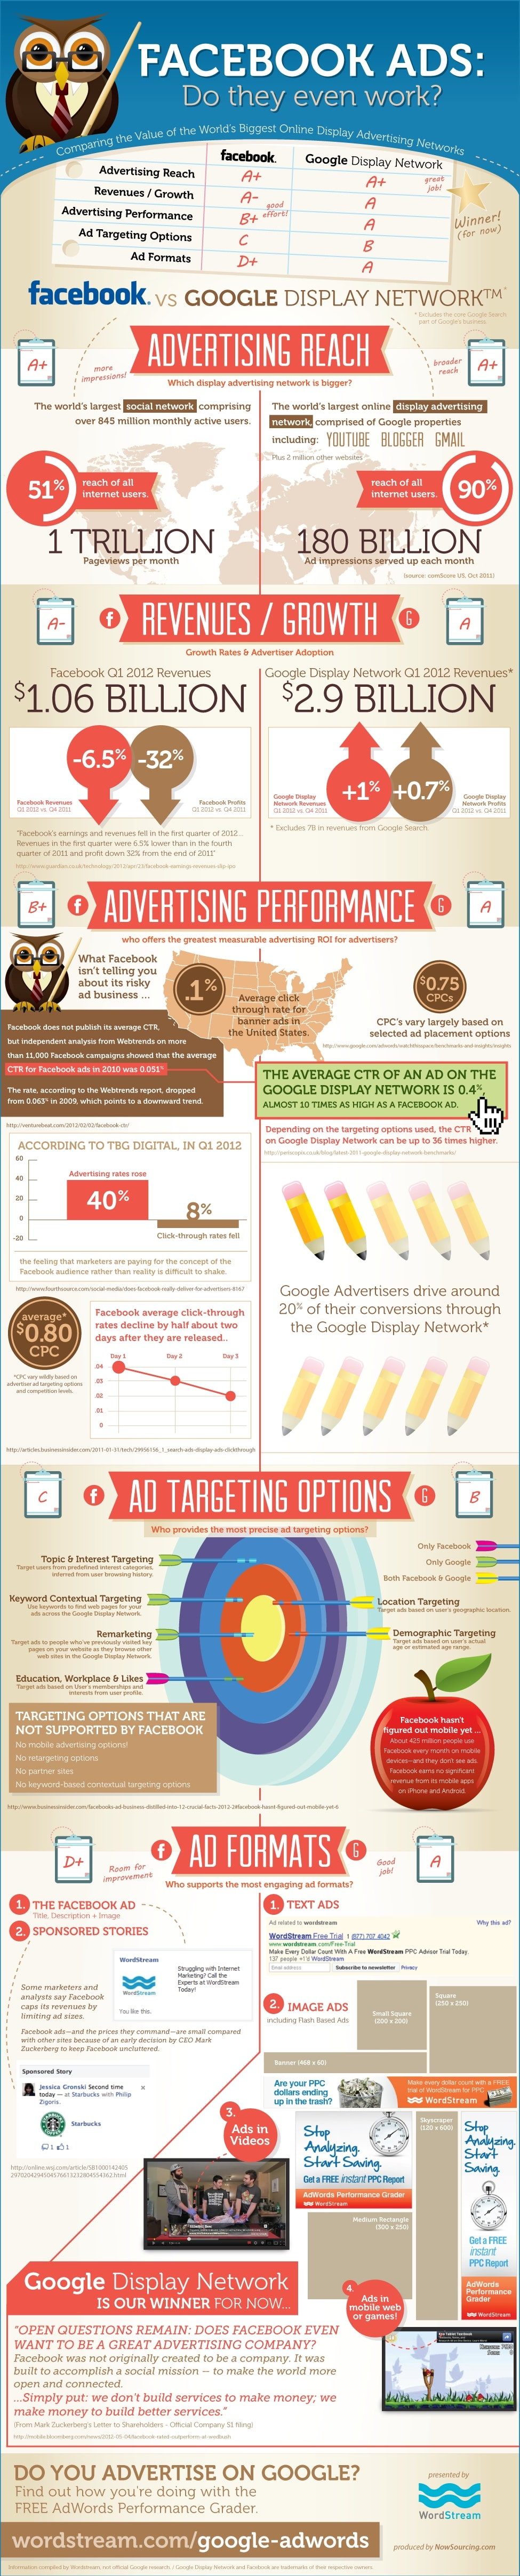 Facebook Ad Performance: Do They Even Work? [Infographic]